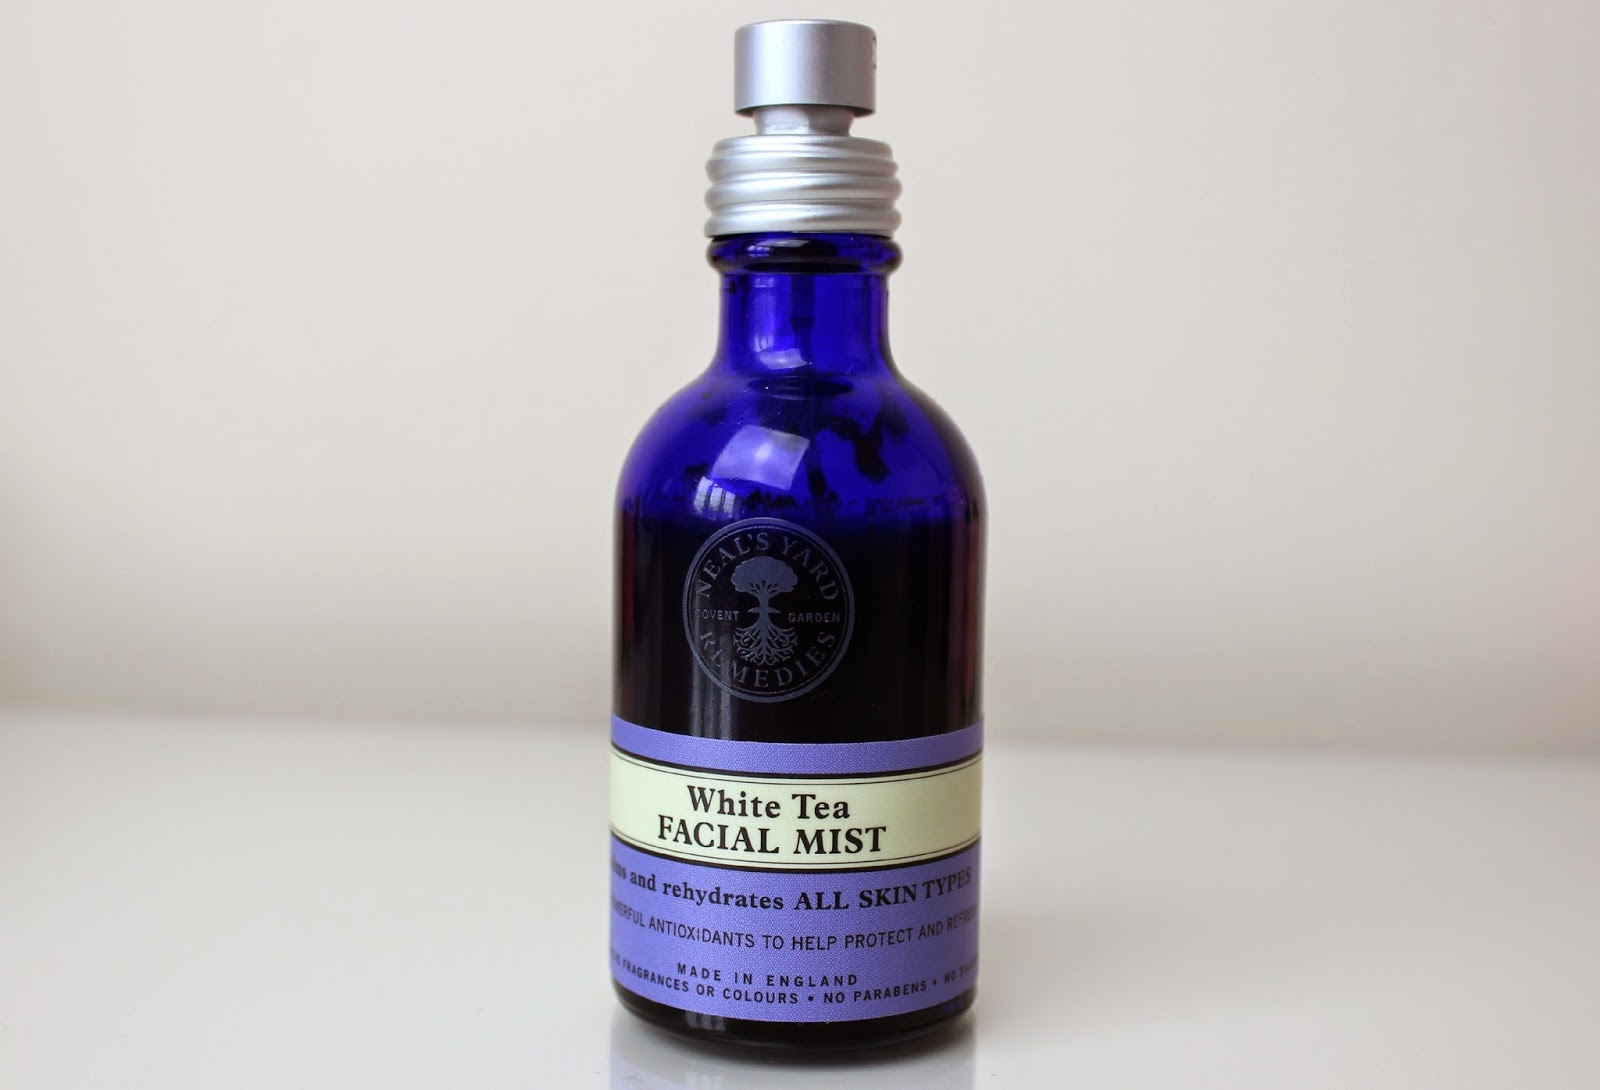 A picture of Neal's Yard Remedies White Tea Facial Mist